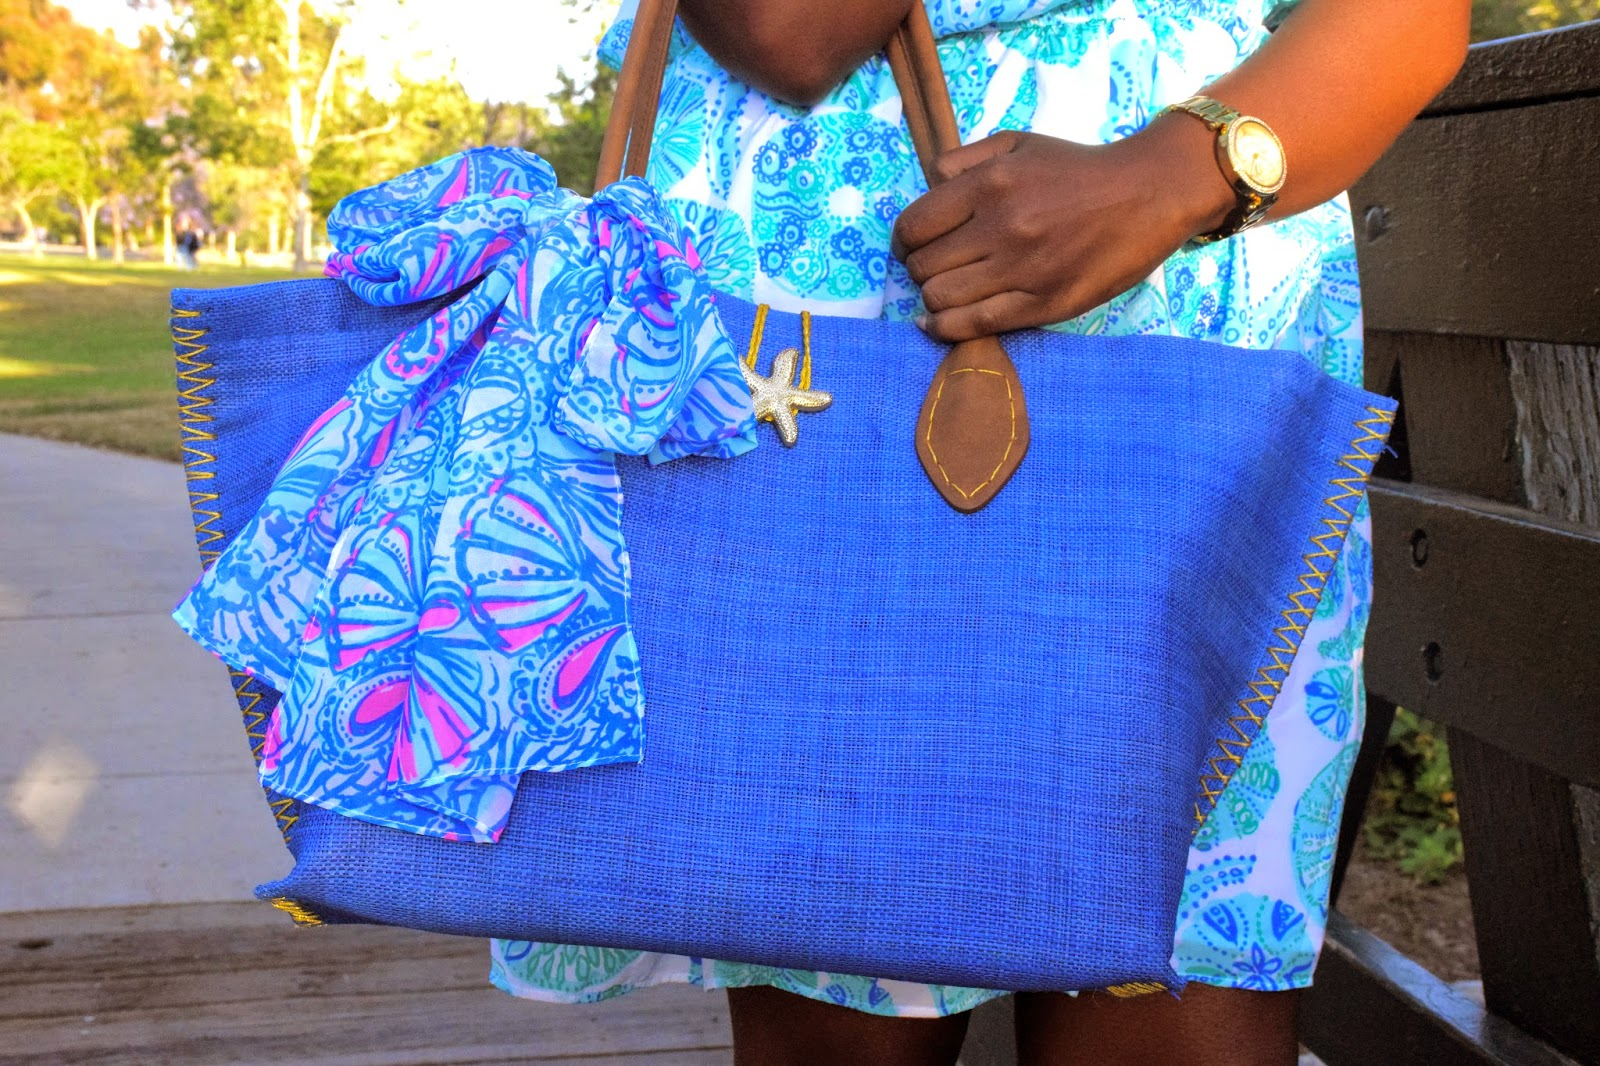 Lilly Pulitzer for Target Raffia Tote Bag - My Fans